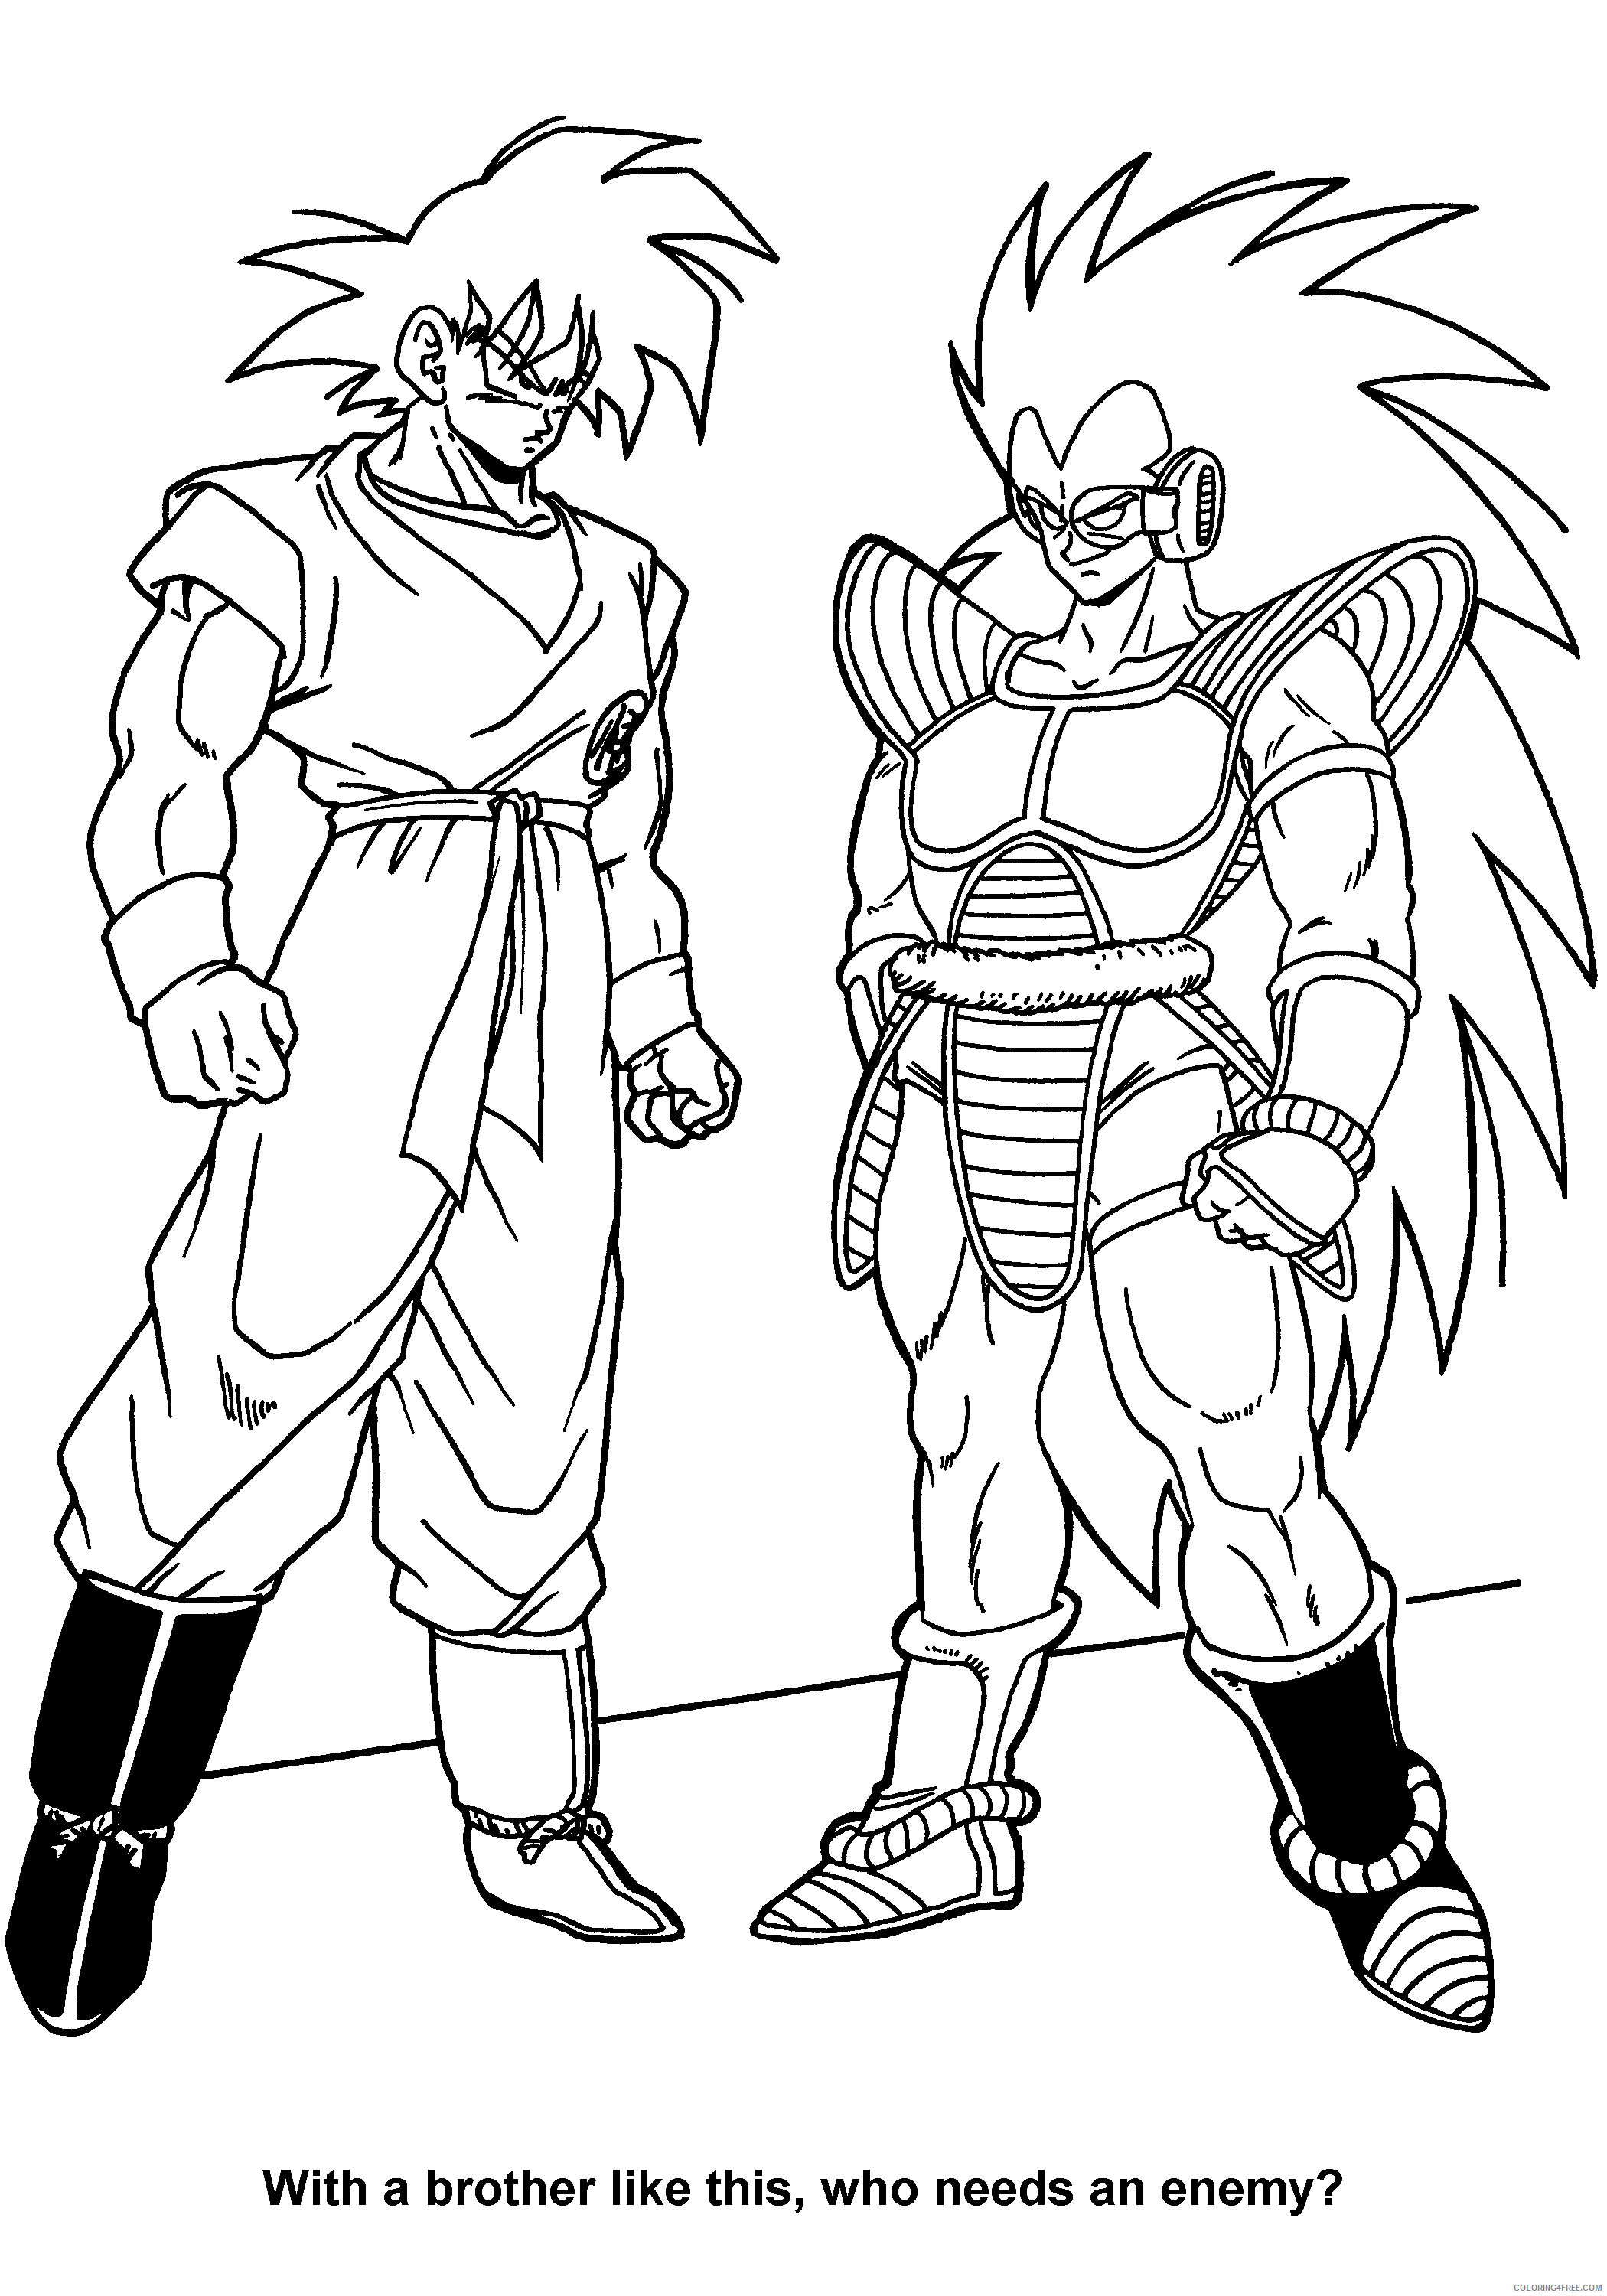 038 dragon ball z with a brother like this who needs an enemy Printable Coloring4free